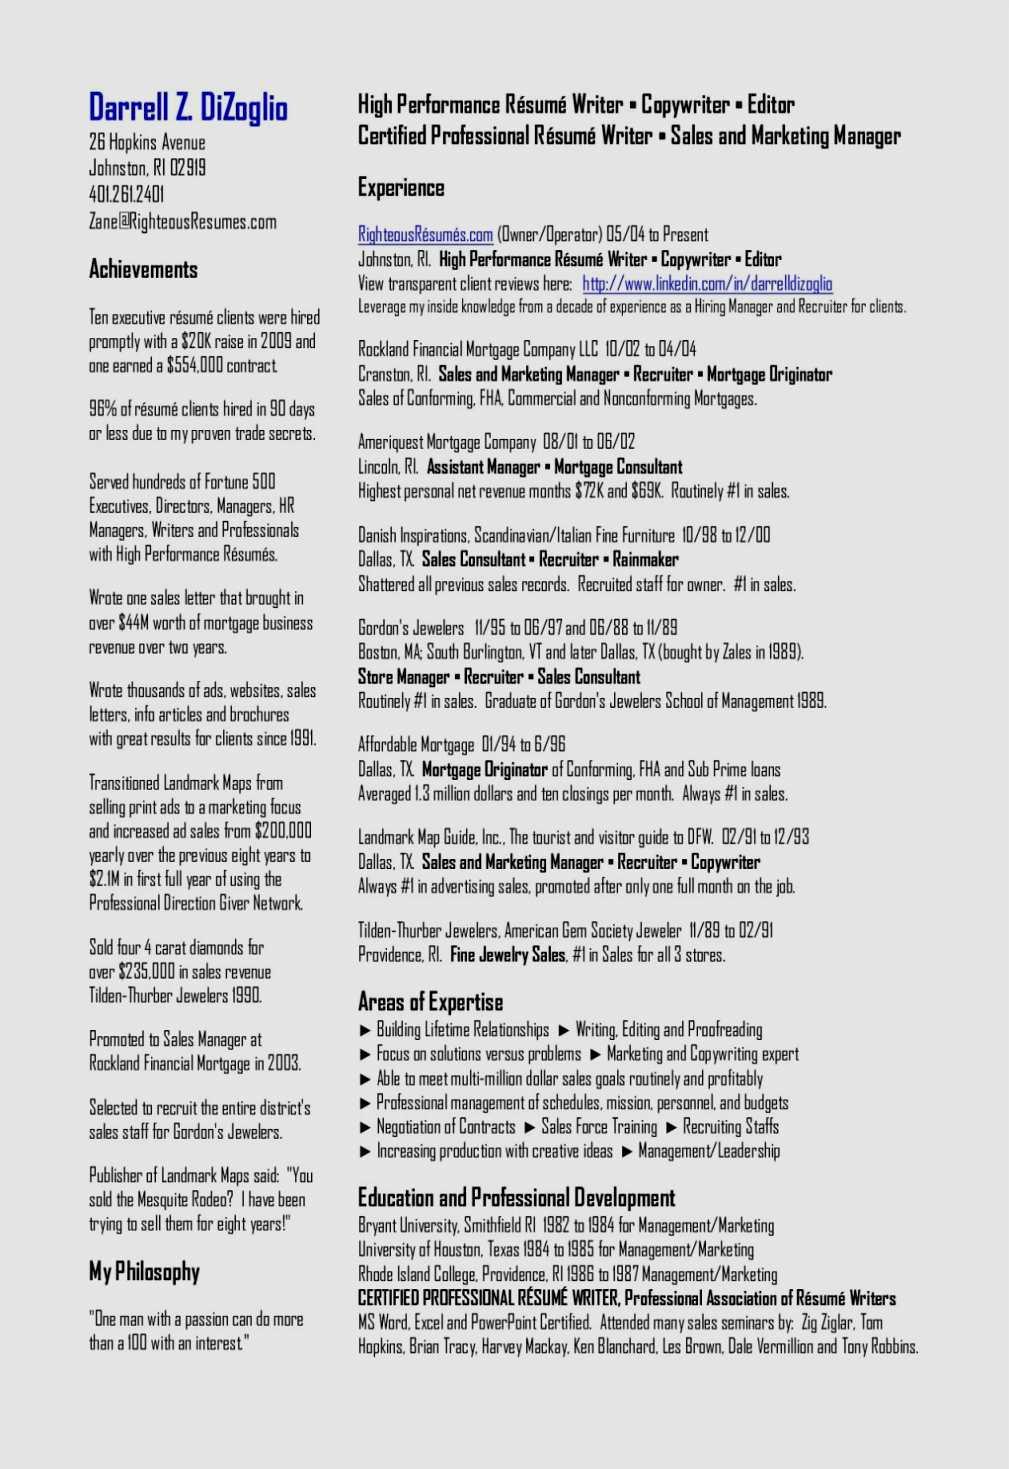 Professional Free Resume Templates - 20 Fresh Resume Template Professional Free Resume Templates